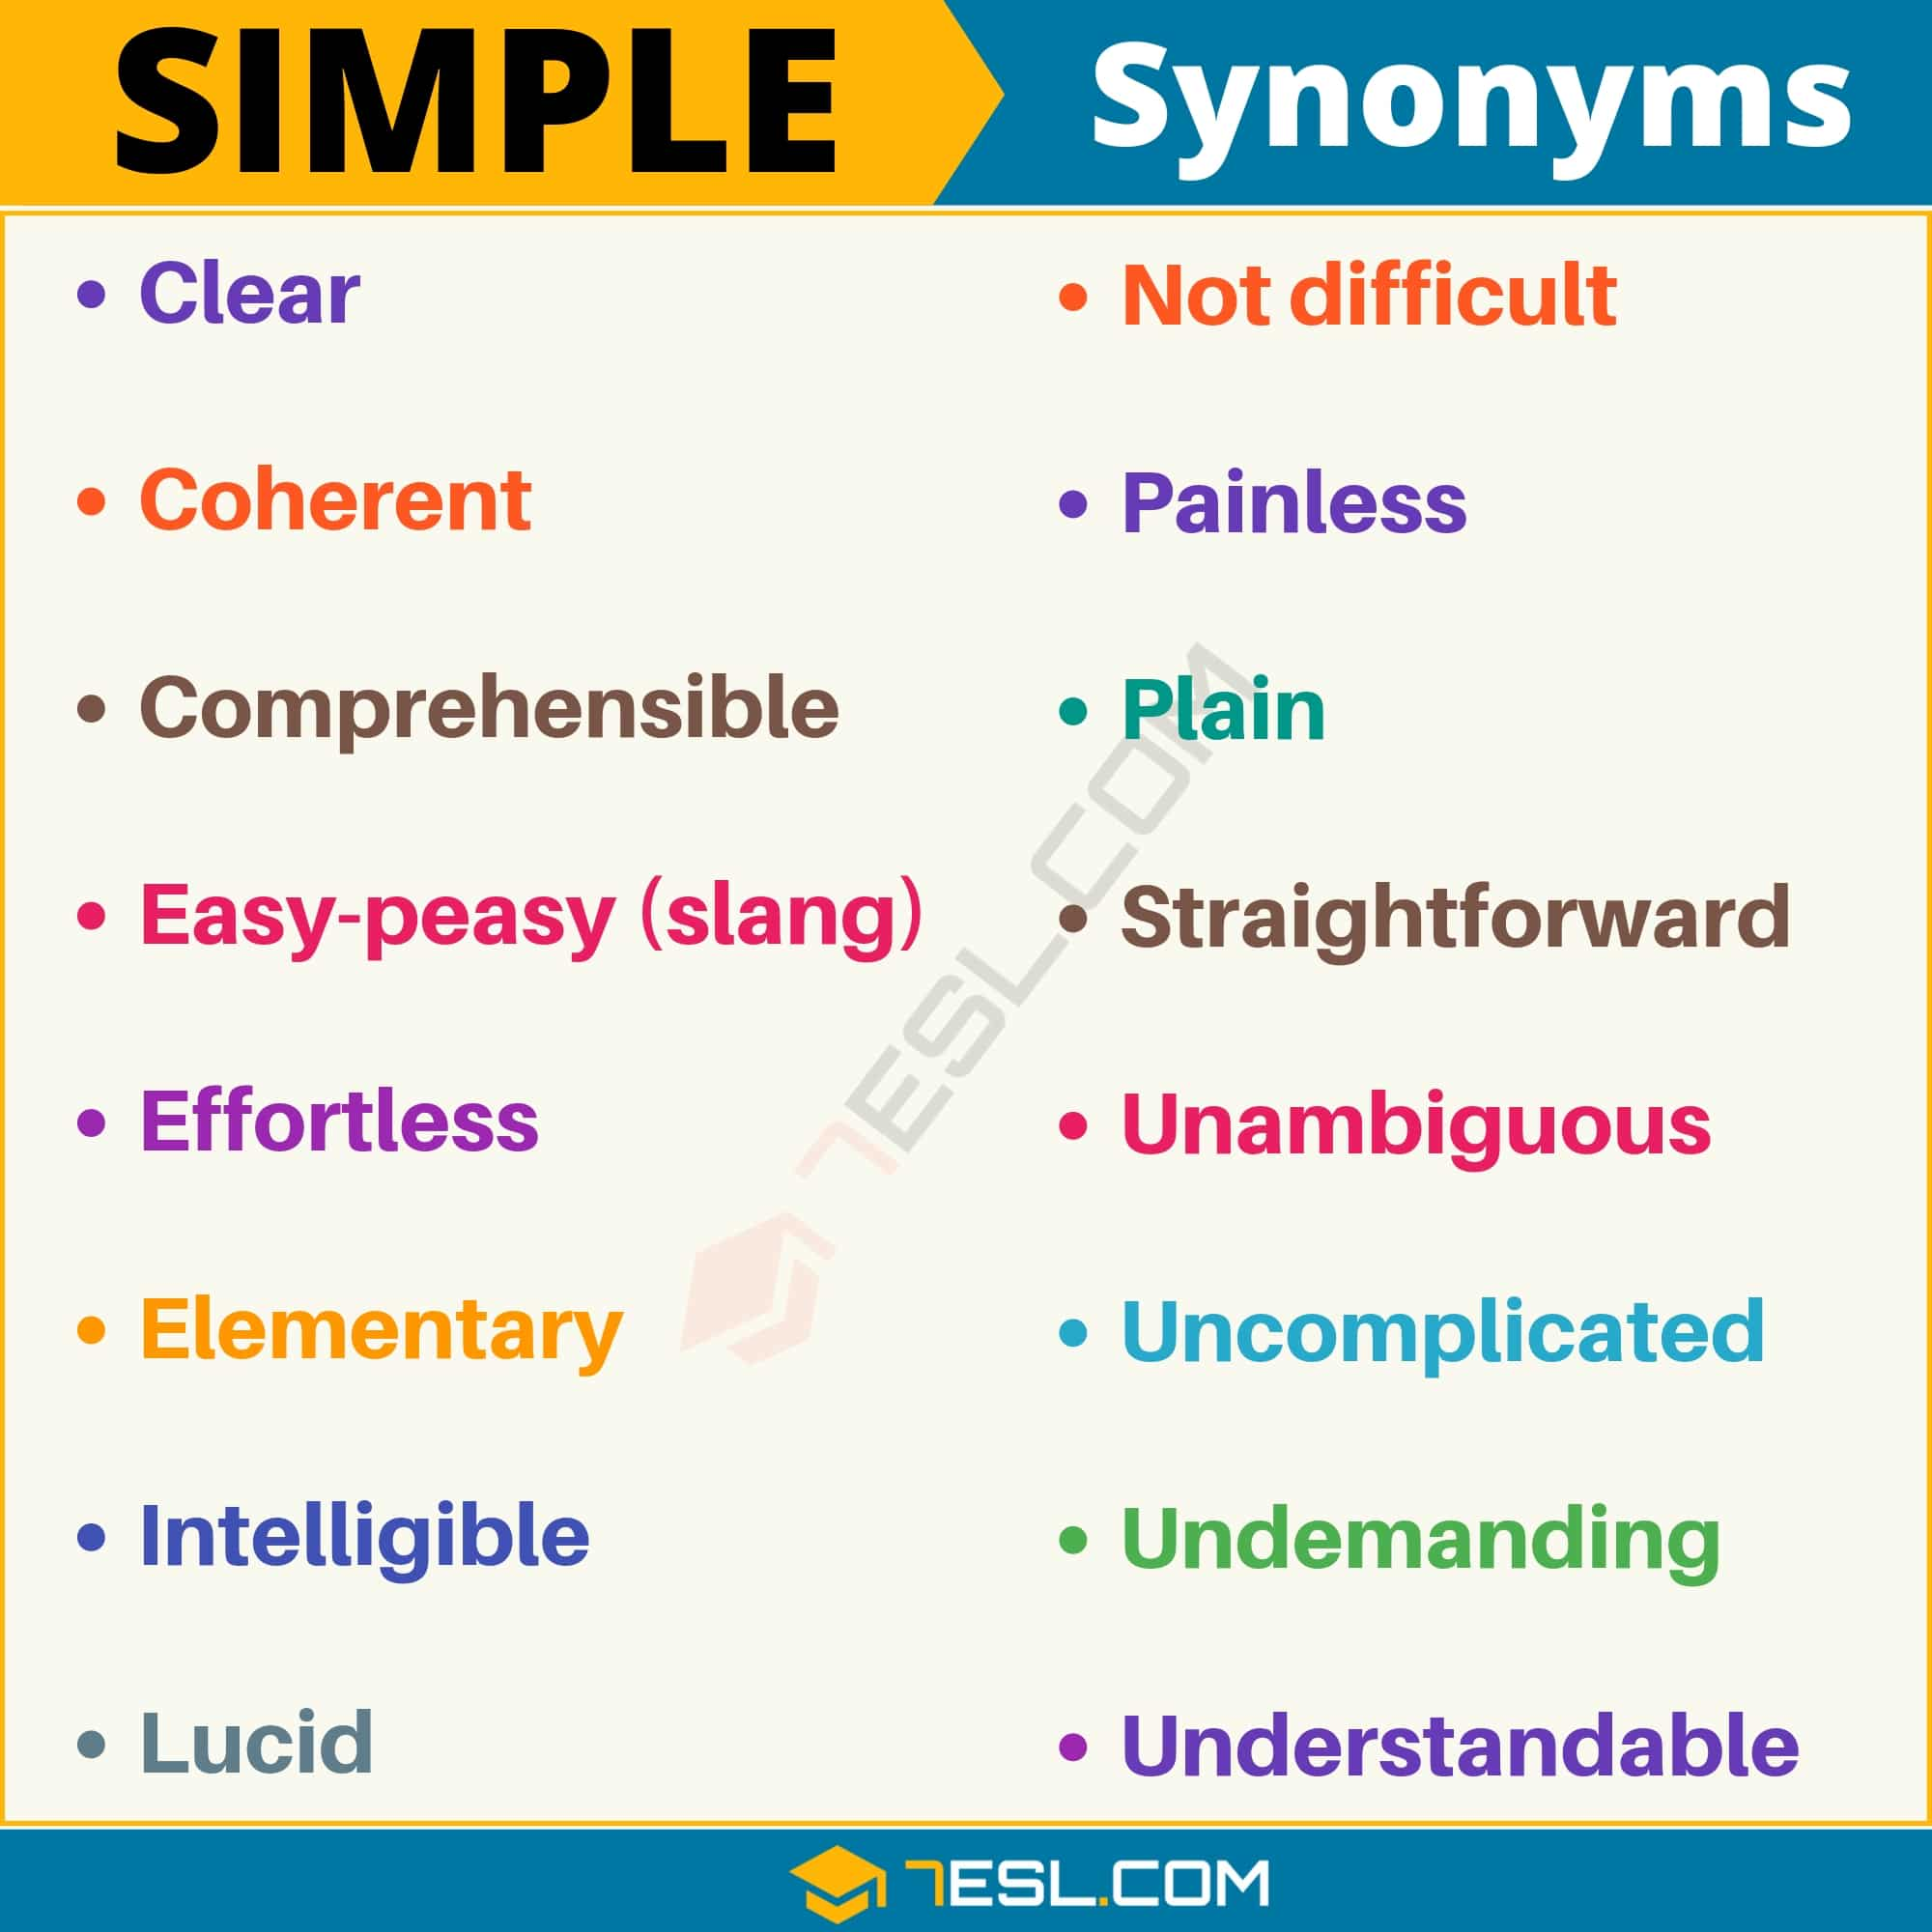 SIMPLE Synonym: List of 16 Synonyms for Simple with Useful Examples